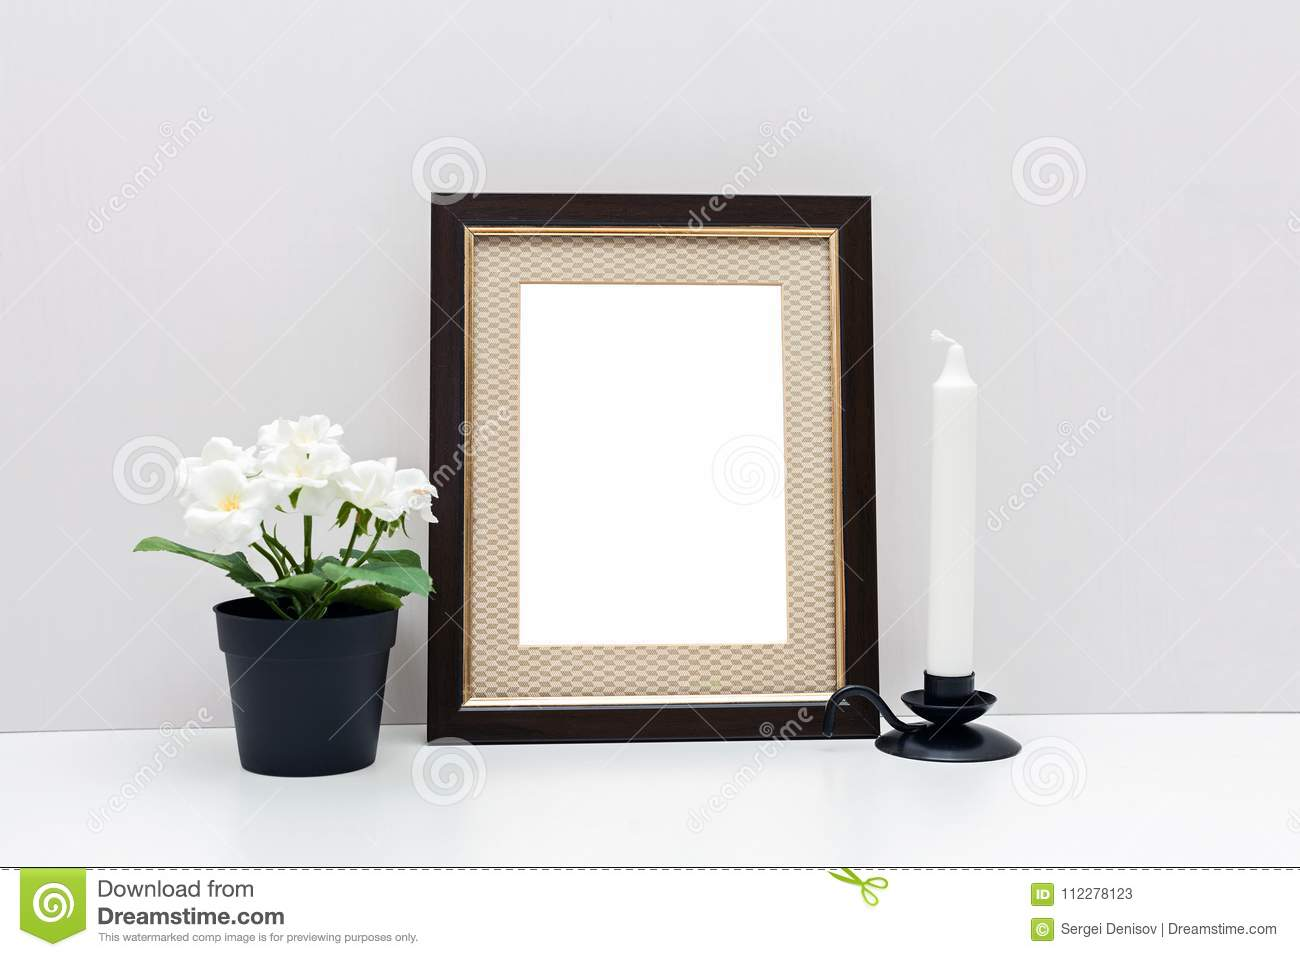 Mockup 8x10 With With Flowers And White Candle Stock Image - Image ...